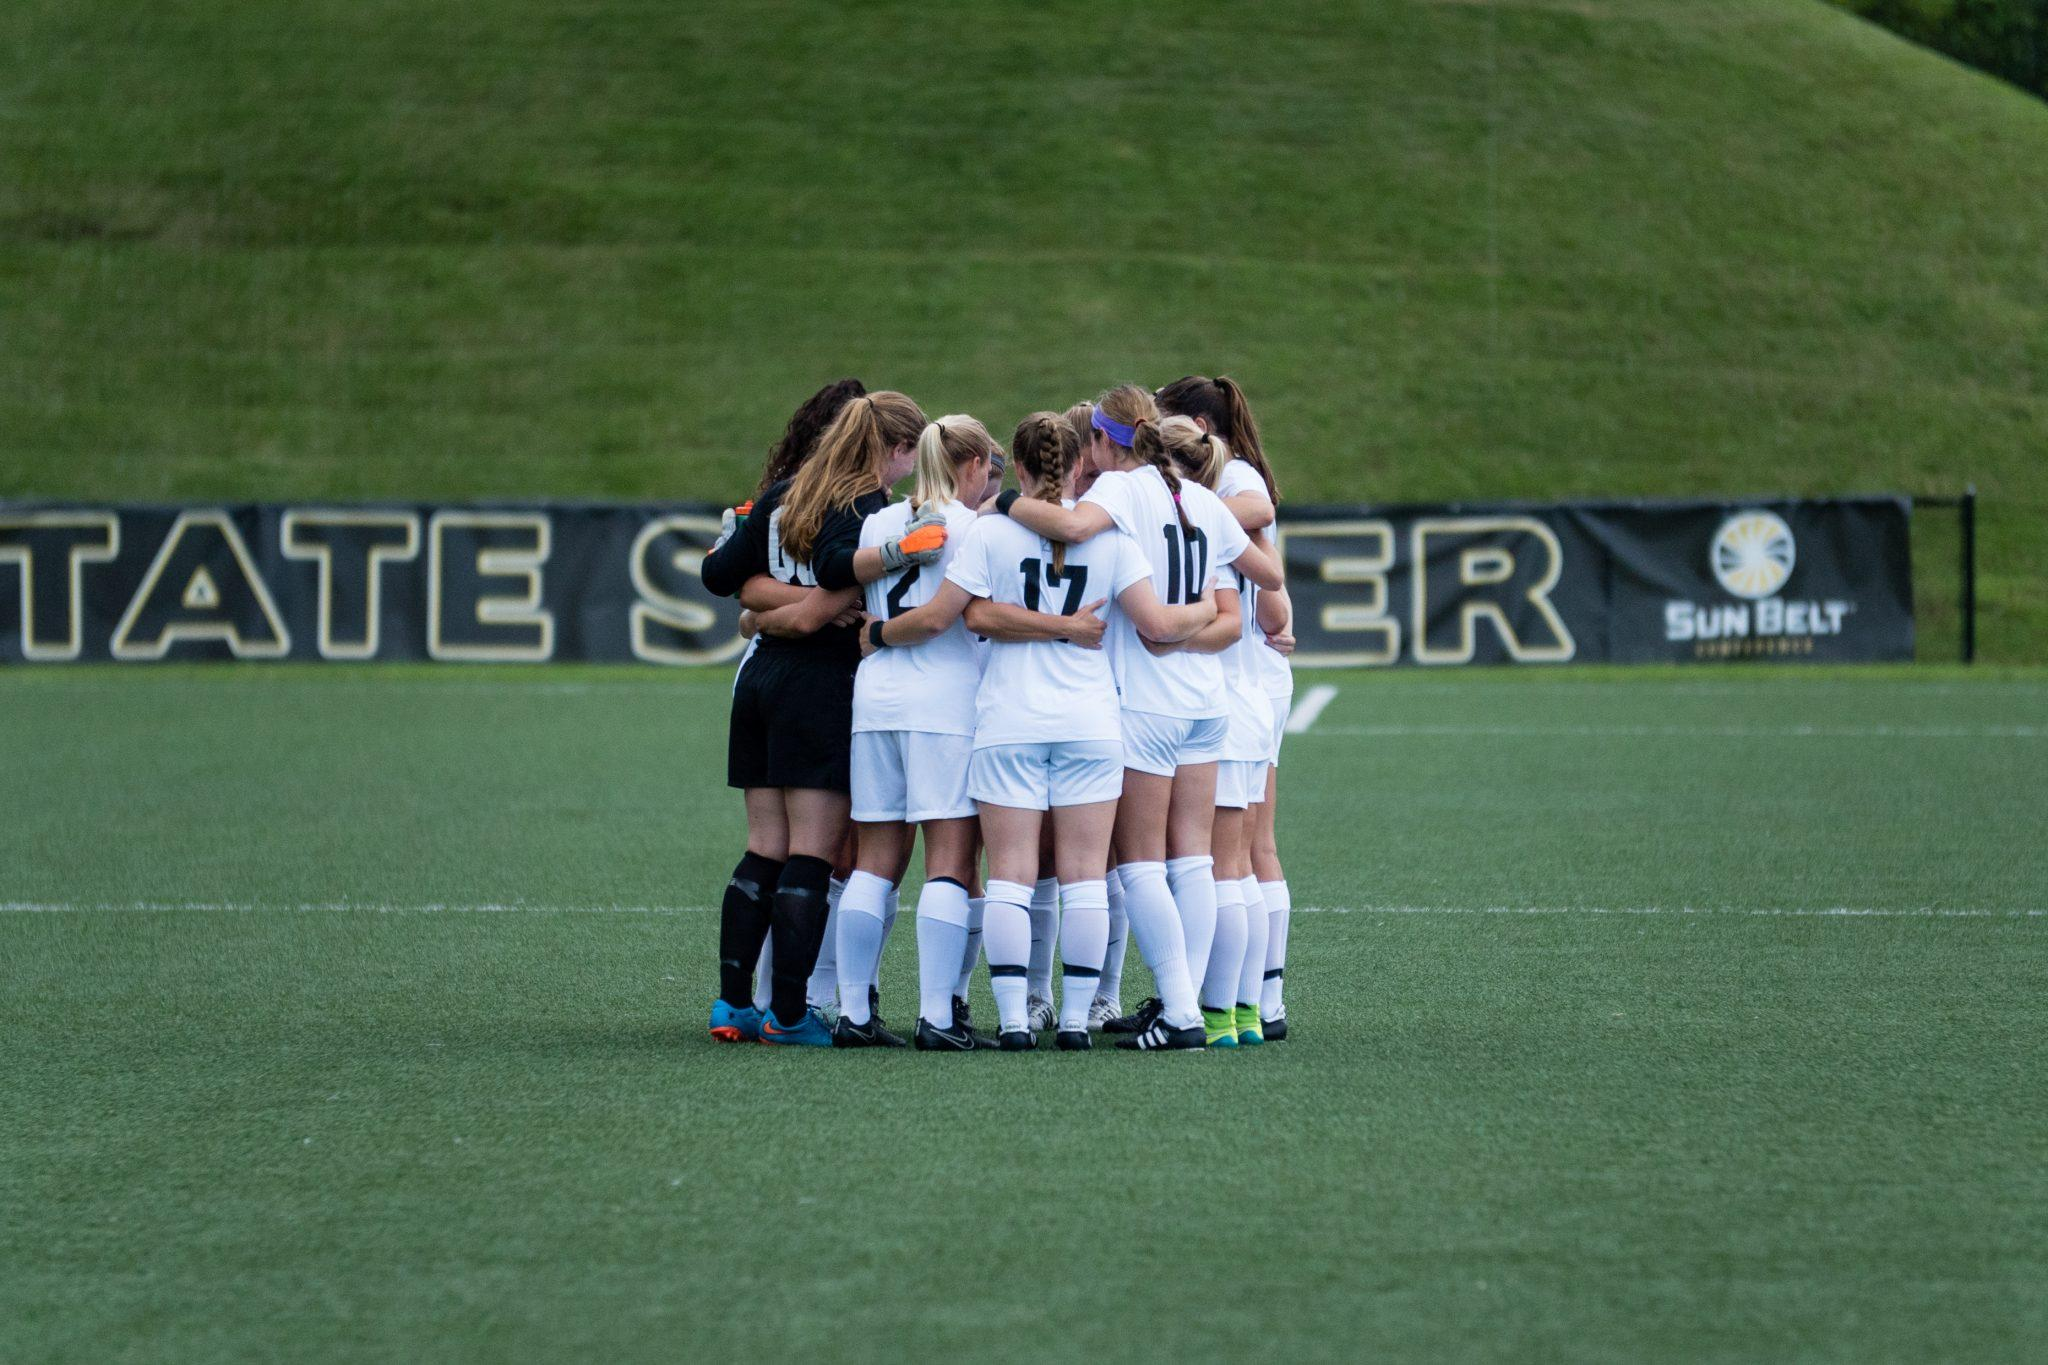 The+App+State+women%27s+soccer+team+huddles+up+on+the+field+before+facing+Western+Carolina+on+Thursday+night.+Photo+by+Maleek+Loyd